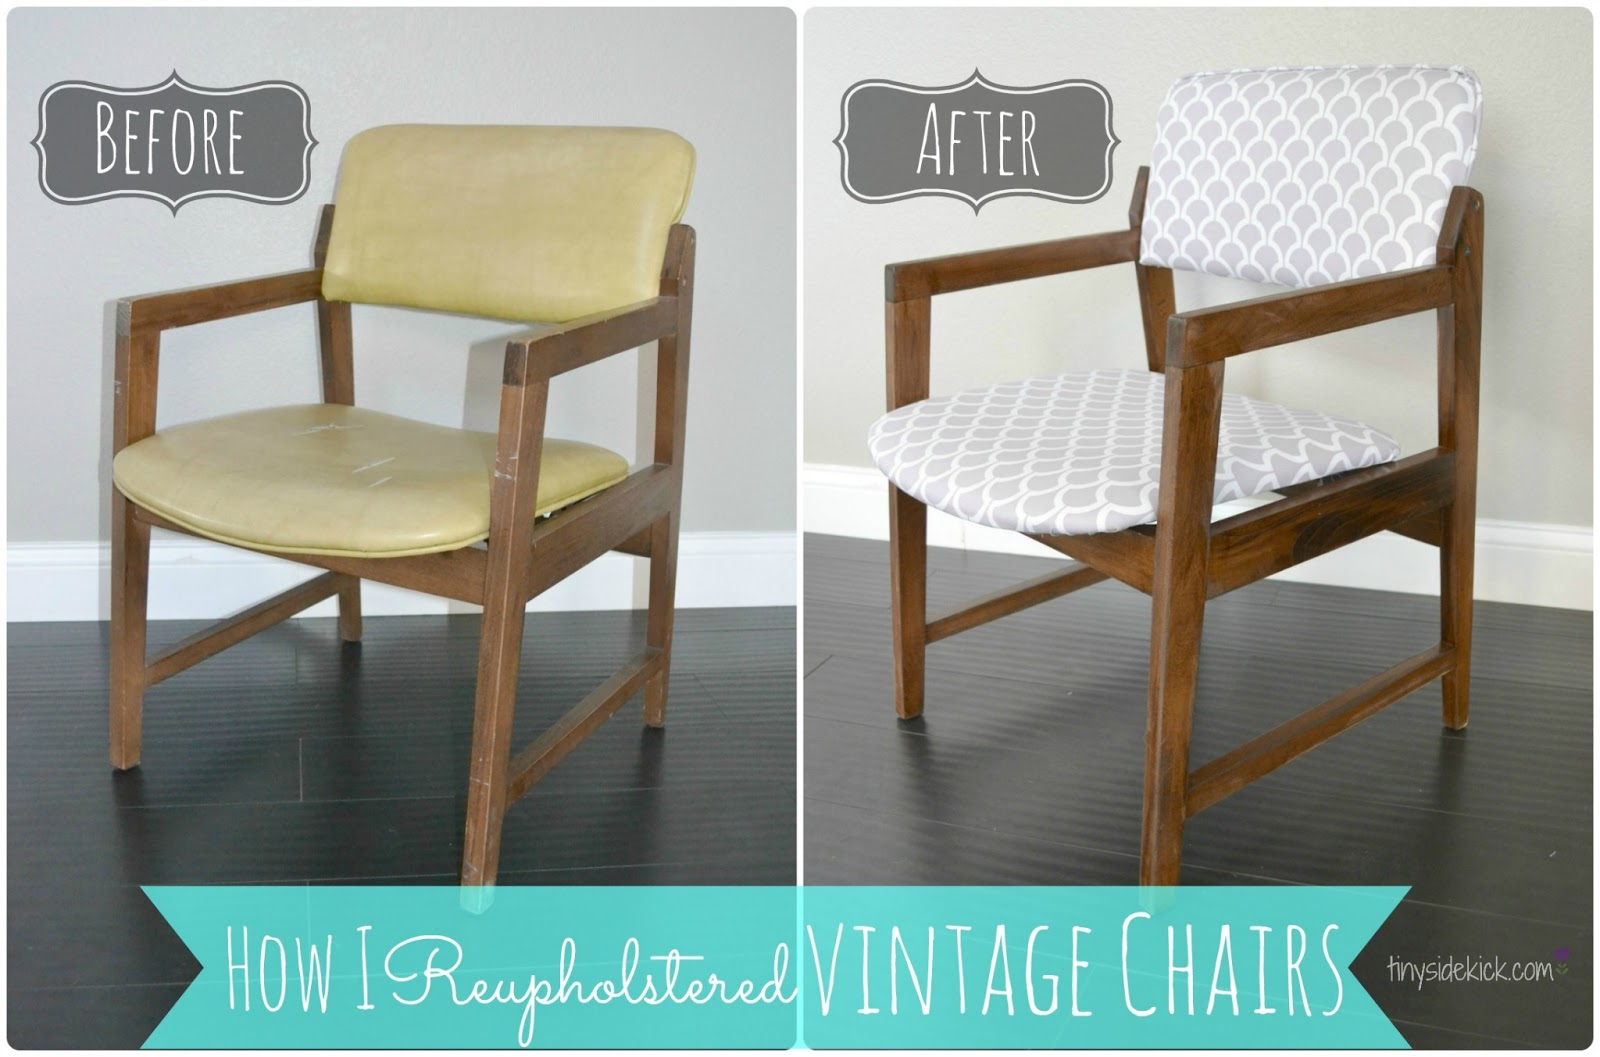 reupholstering vintage dining chairs mid century kitchen chairs How to Reupholster Vintage Dining Chairs